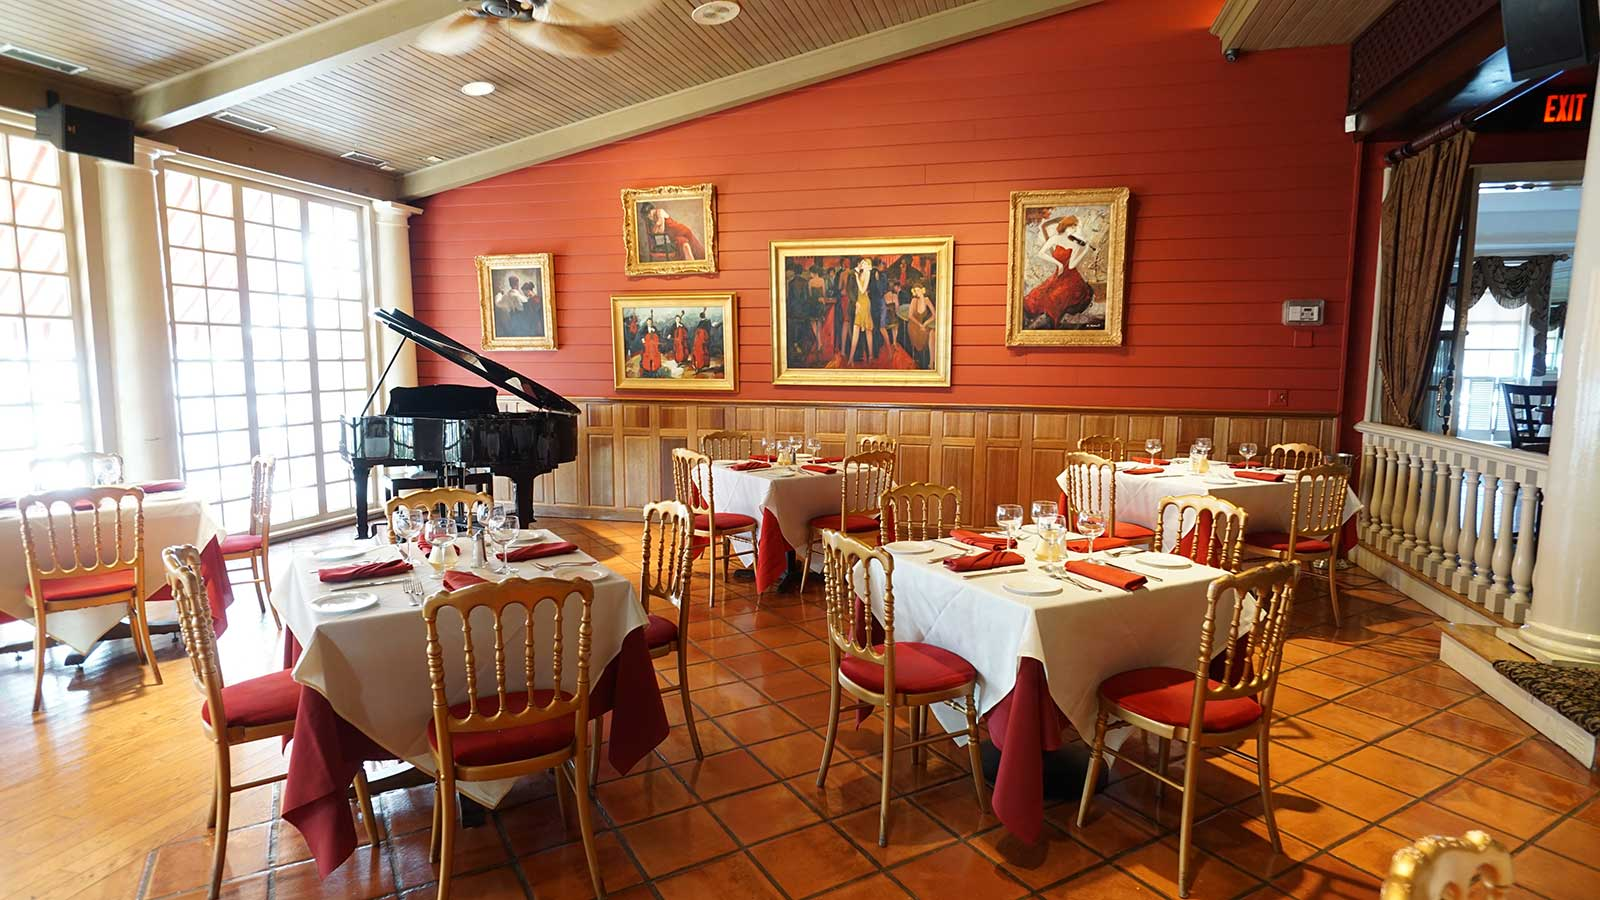 Best Italian Restaurants In Bergen County Nj  The Stony. Friendship Signs Of Stroke. Bored Signs. Electrical Tape Signs Of Stroke. Corona Signs. Pneumocystis Pneumonia Signs. More Or Less Signs Of Stroke. Root Word Signs Of Stroke. Lip Signs